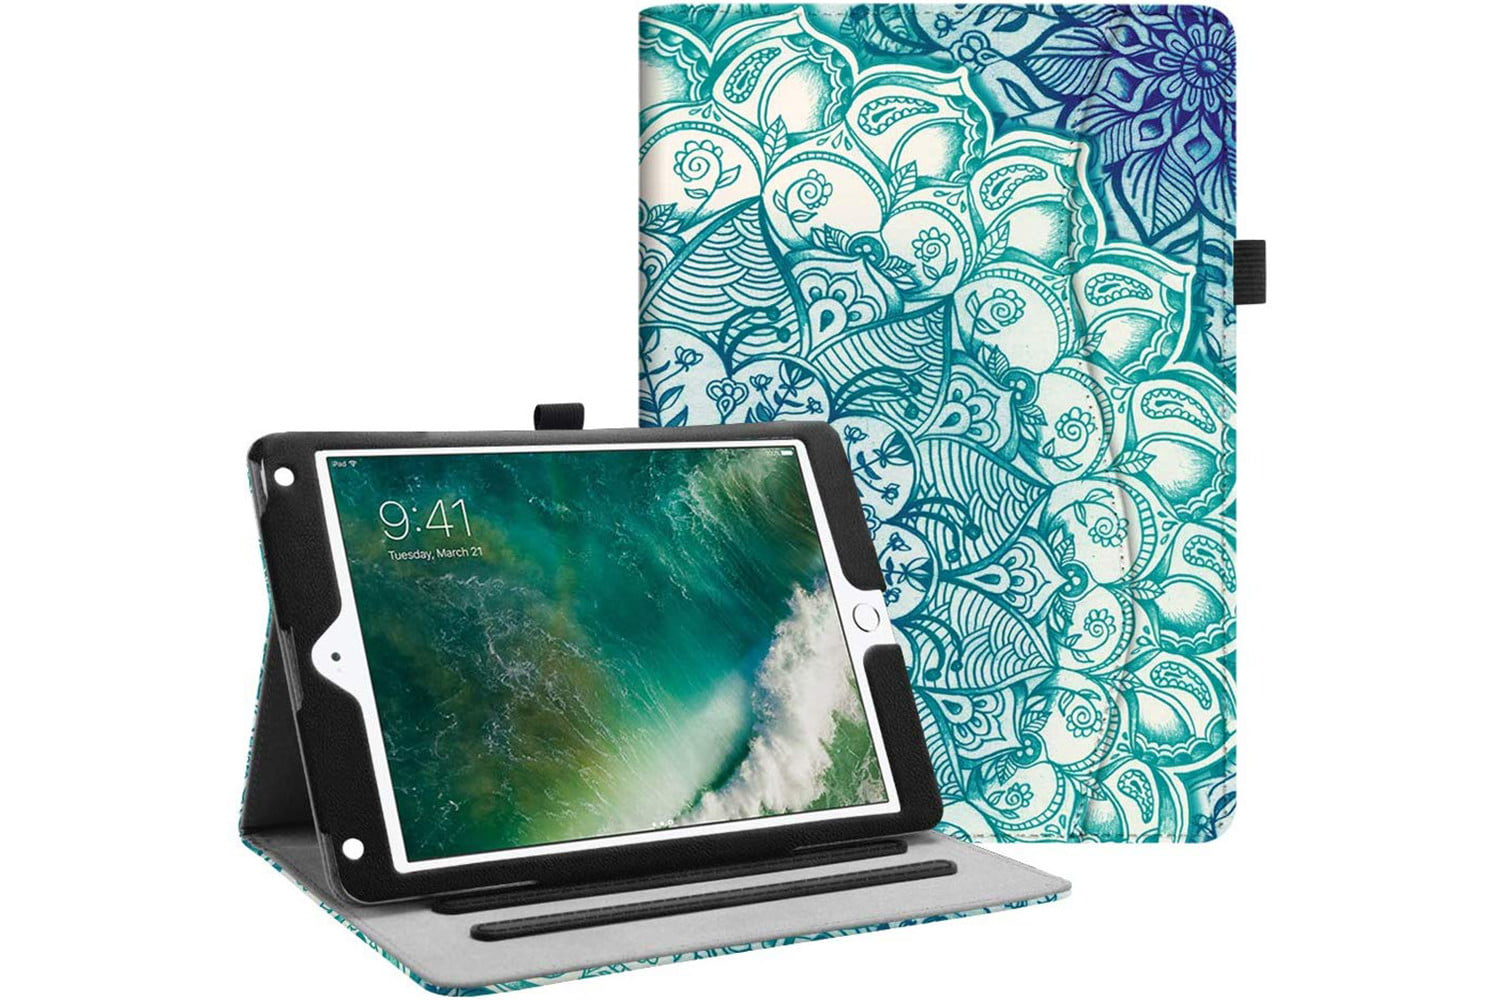 20 Luxury iPad Cases That Stand Out